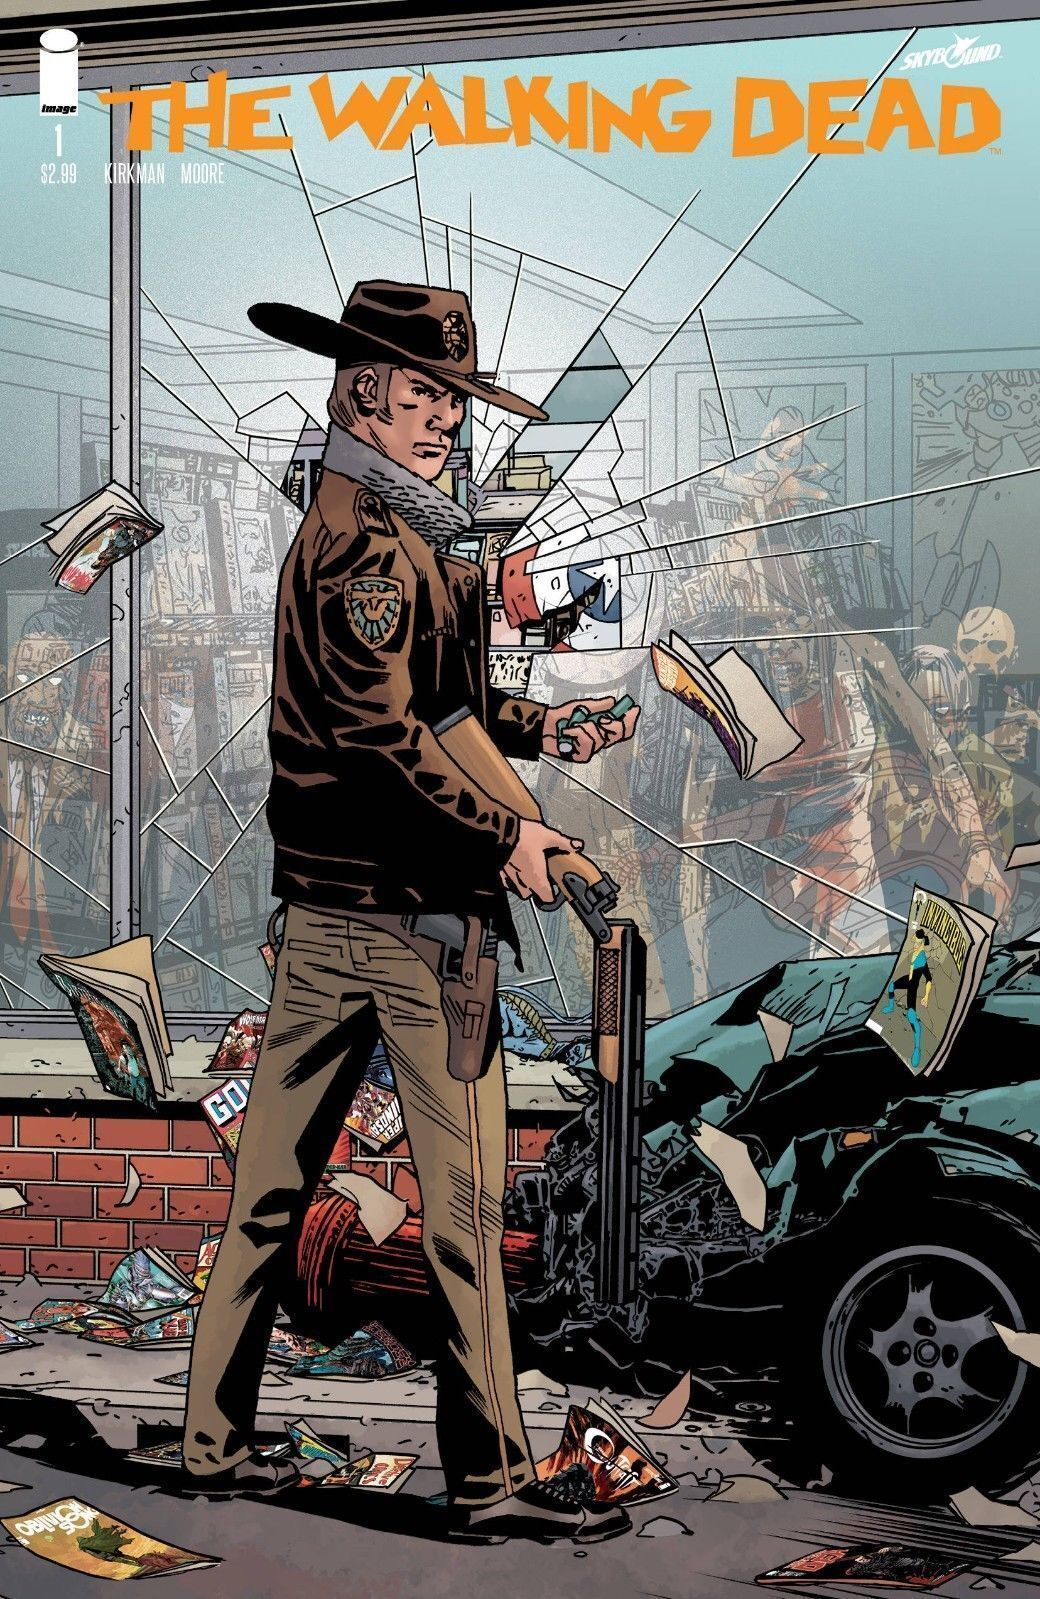 The Walking Dead #1-190 | Variants Select | Image Comics NM 2018-2019 1st Print